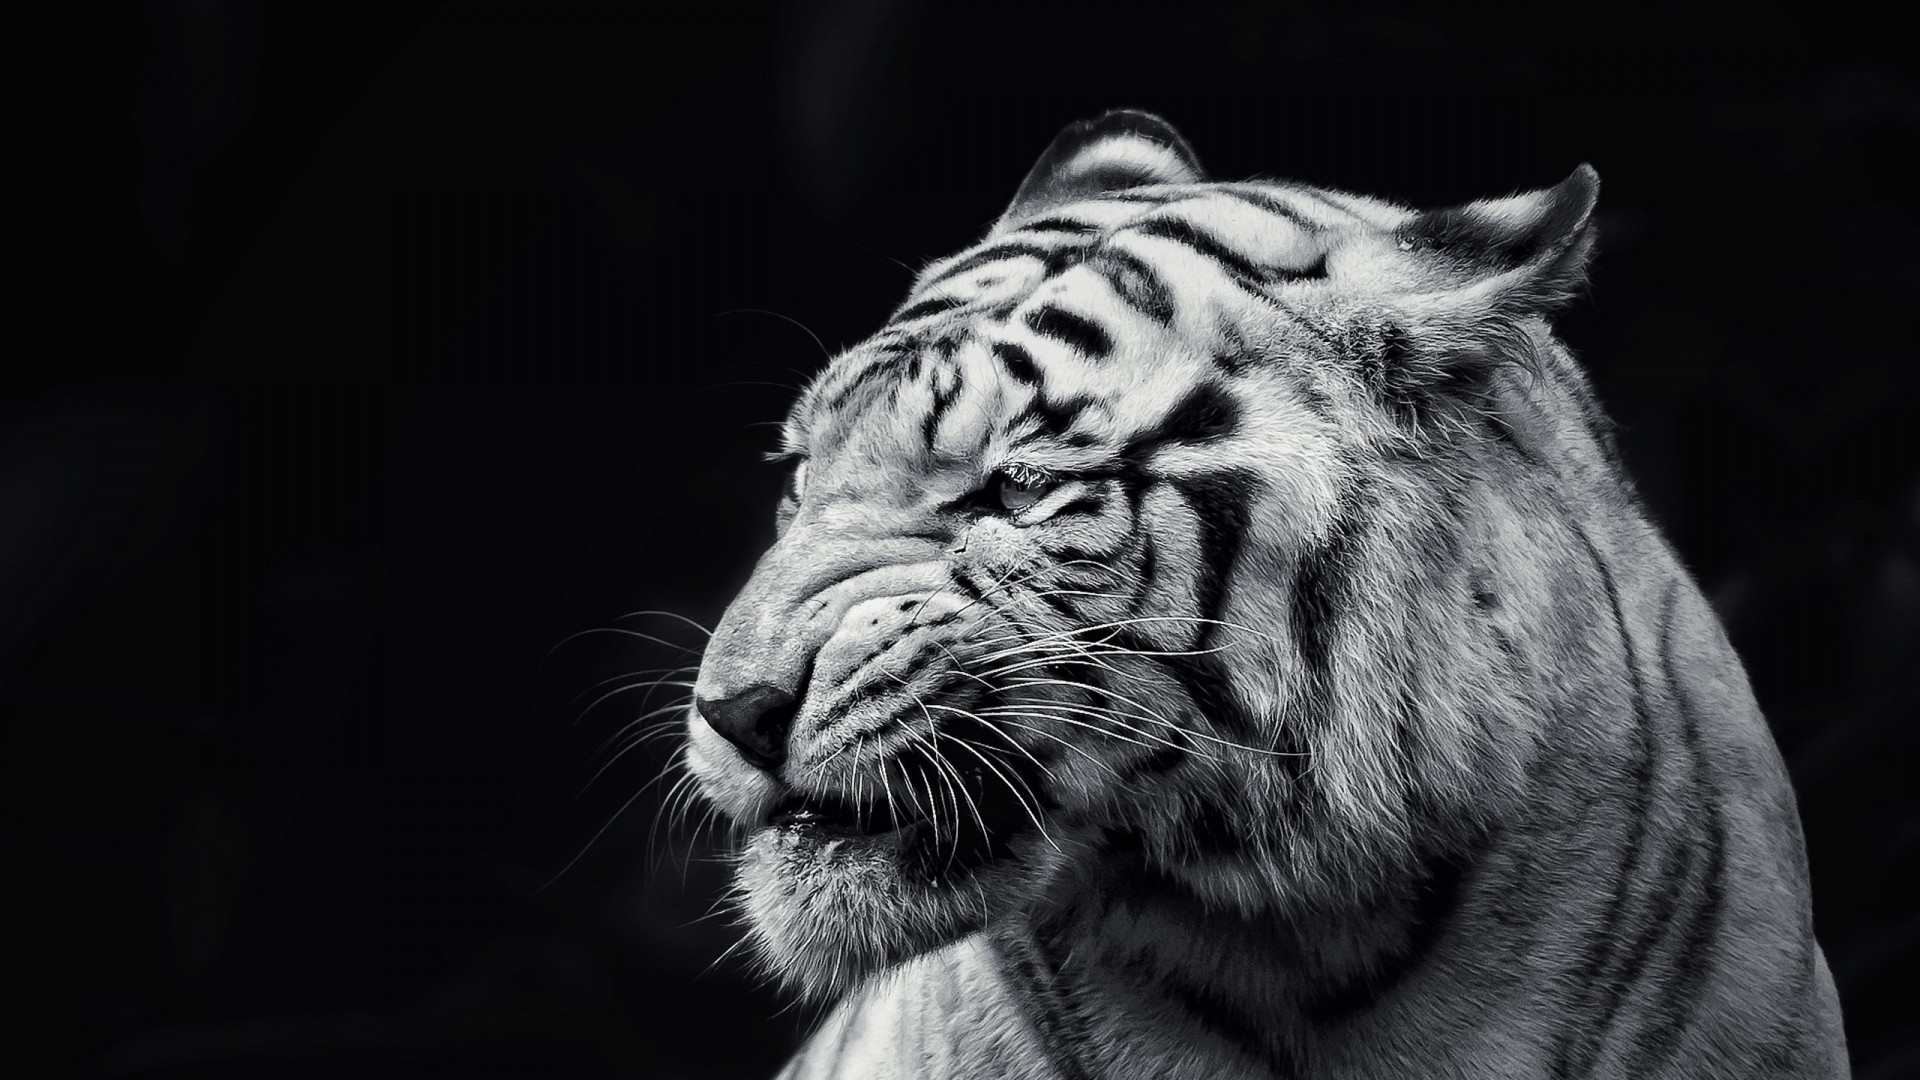 1920x1080 Tiger Wallpaper Full Hd 65 Images